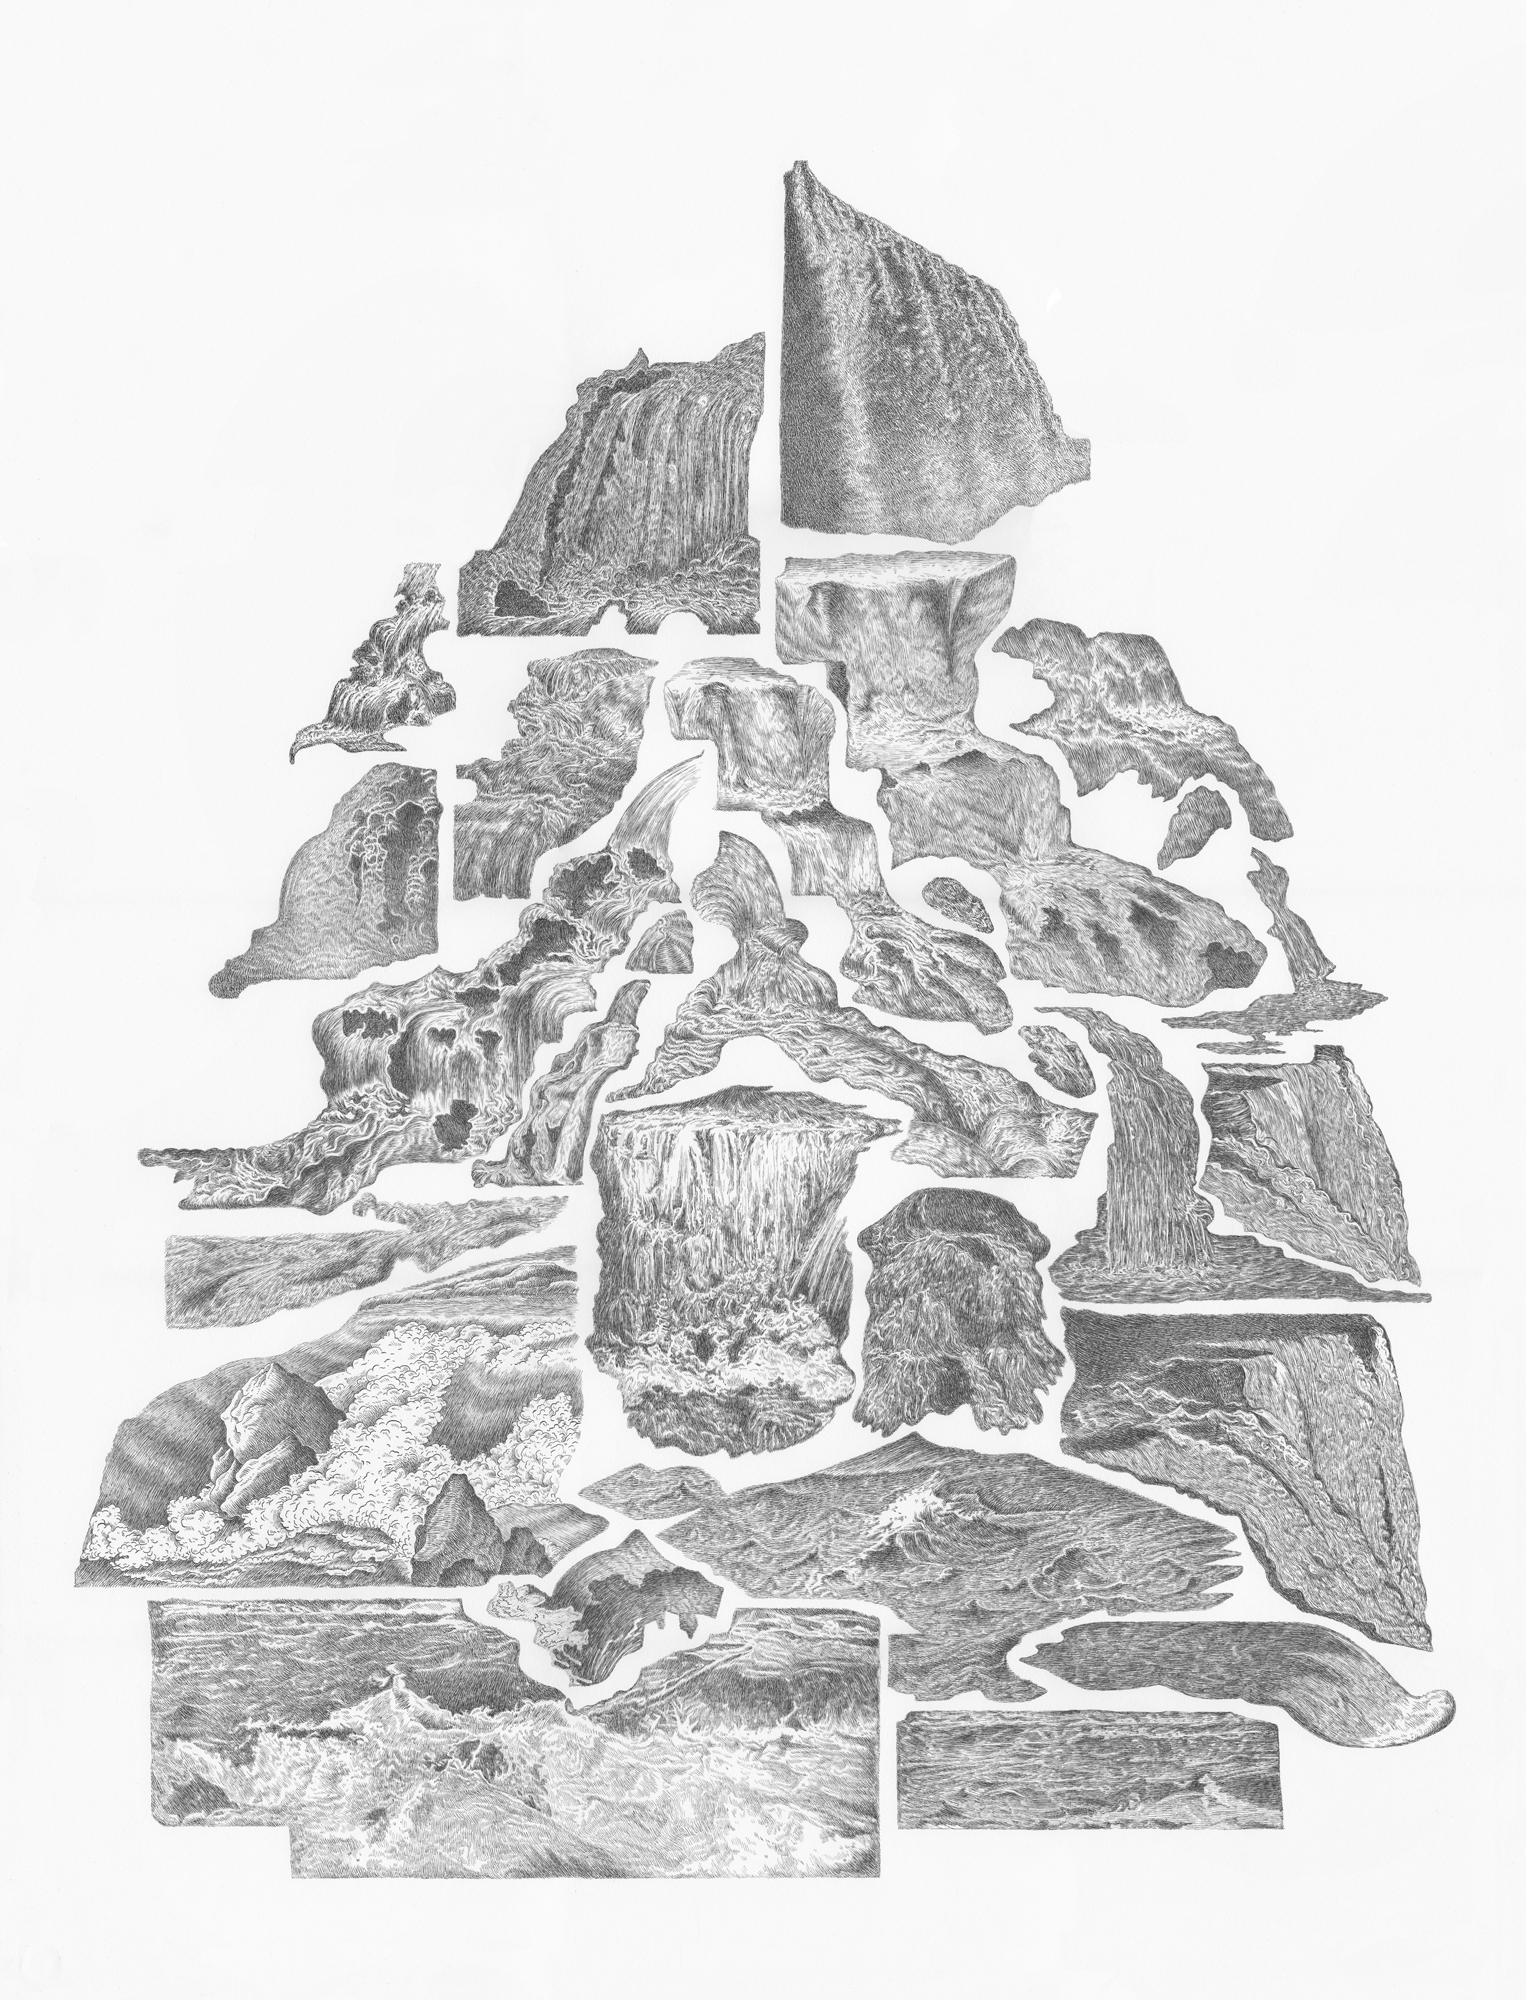 Waterfall Mountain (2017). Image courtesy of the artist.